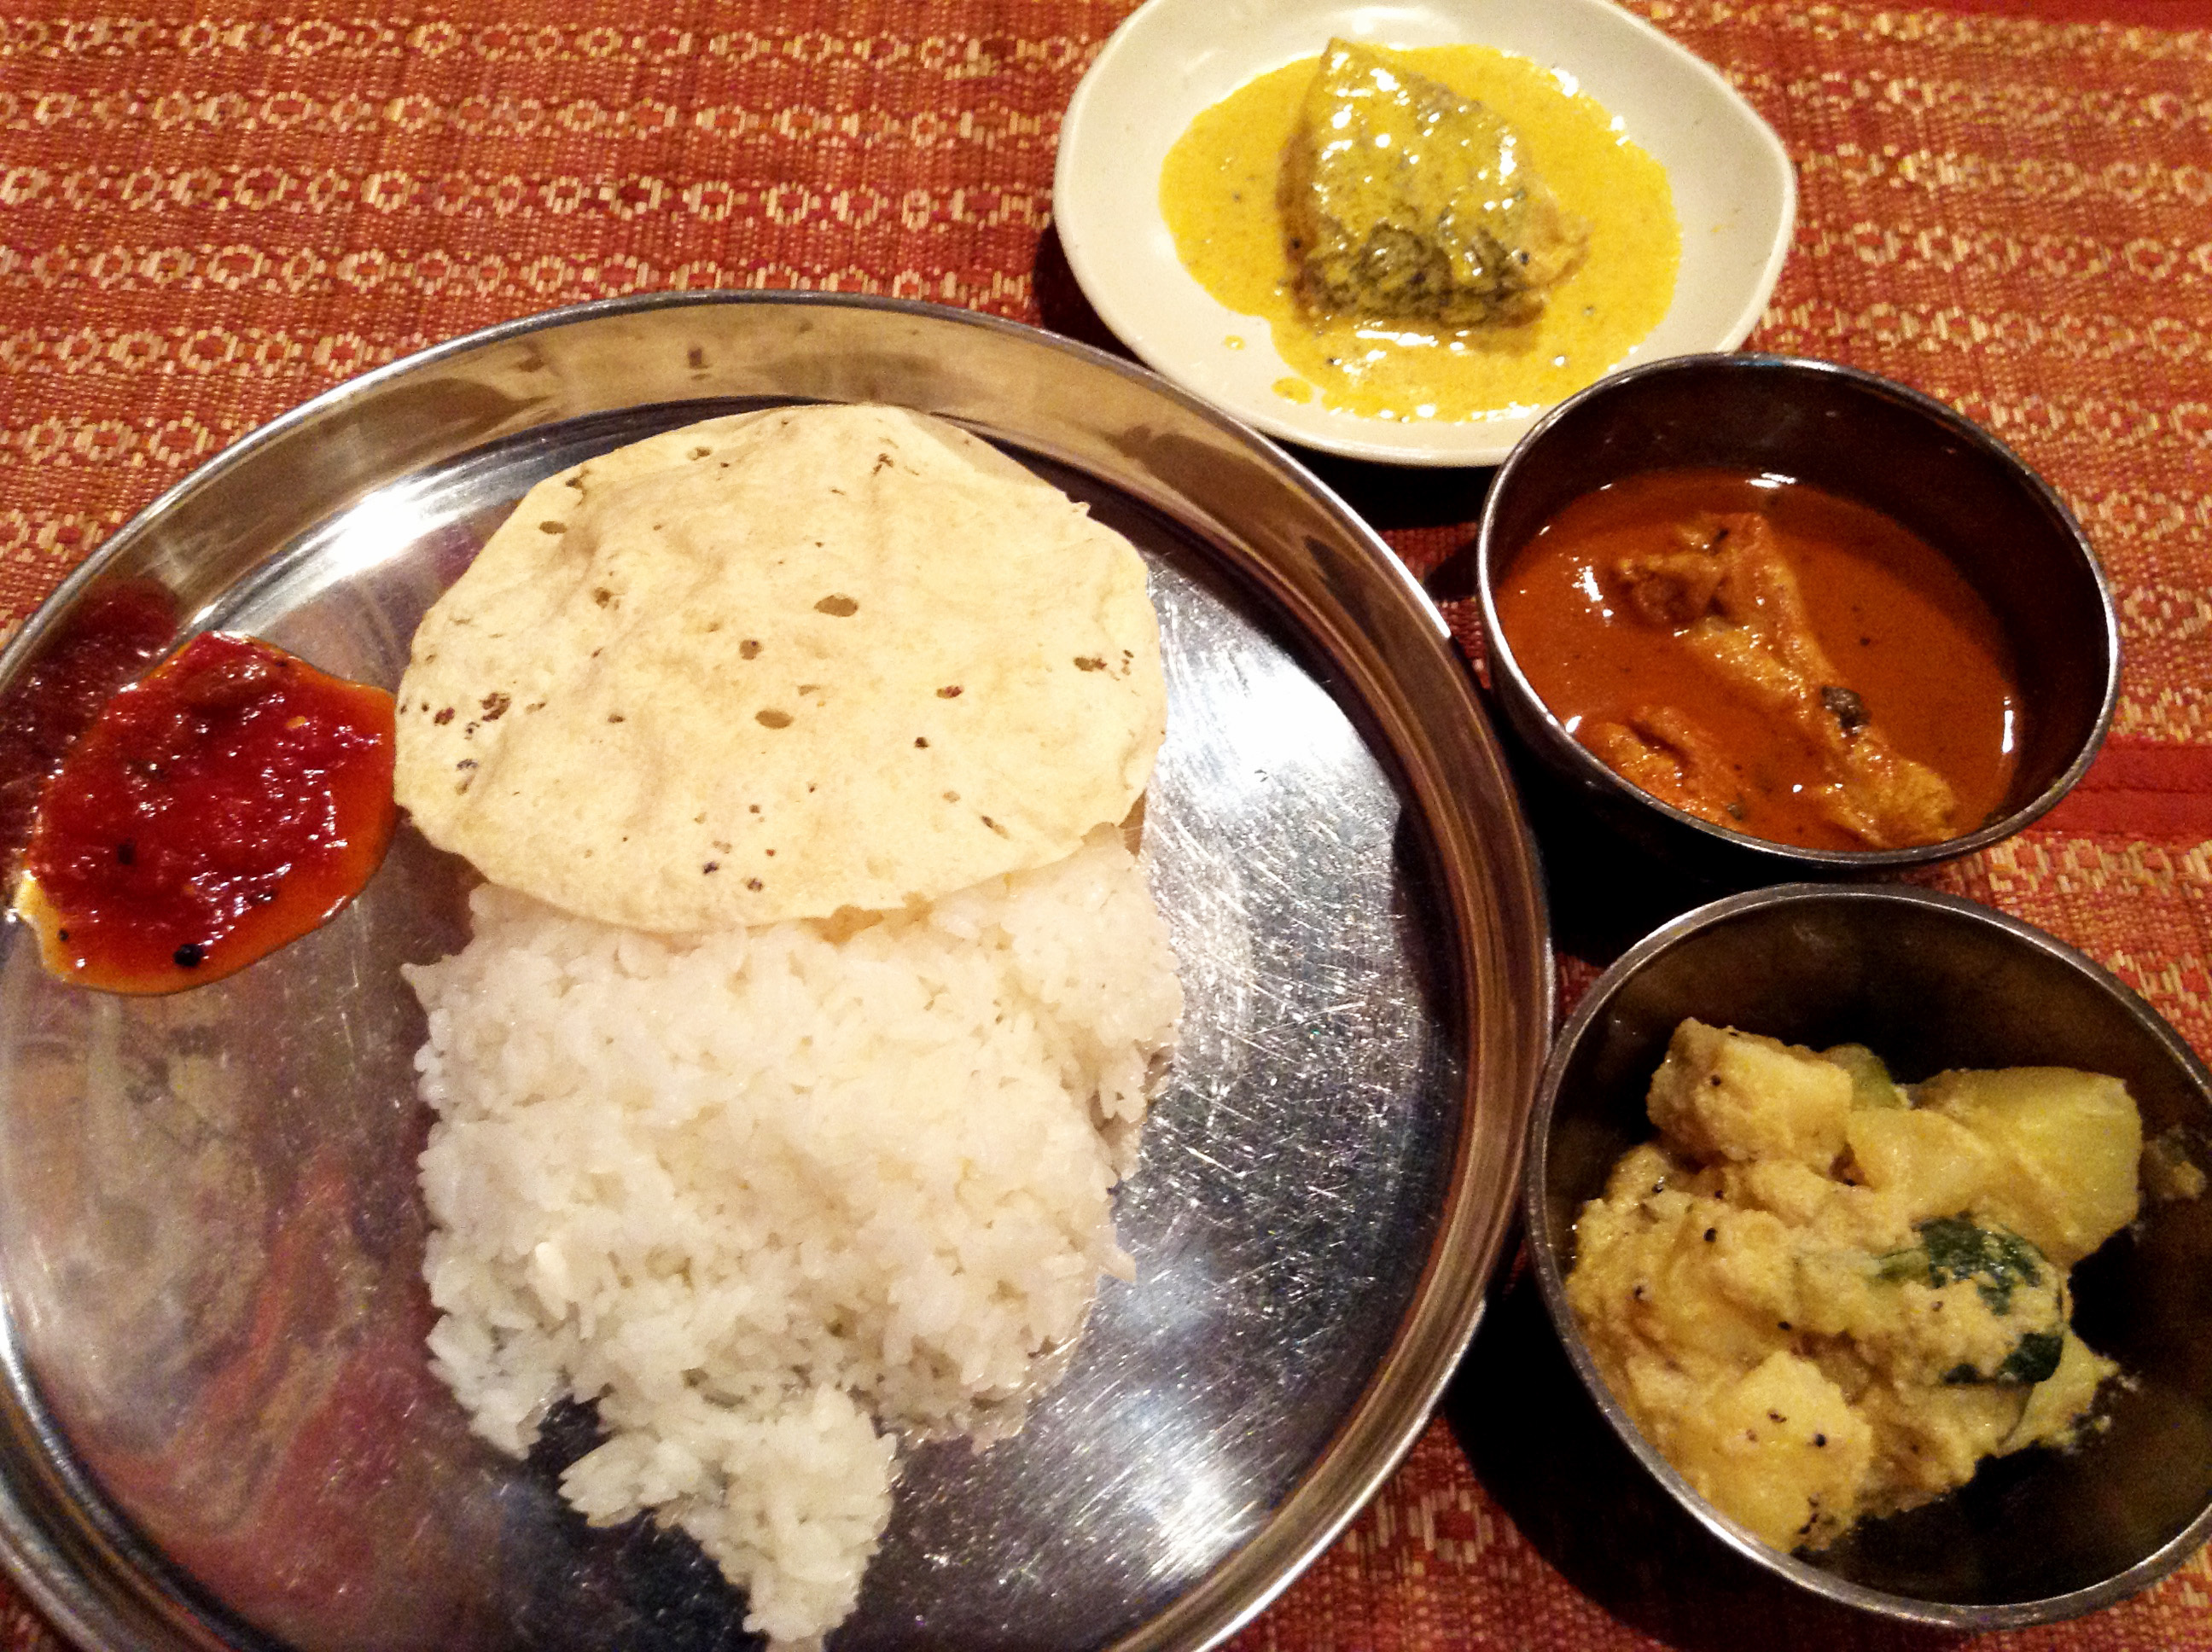 Lunch like a Bengali at Puja